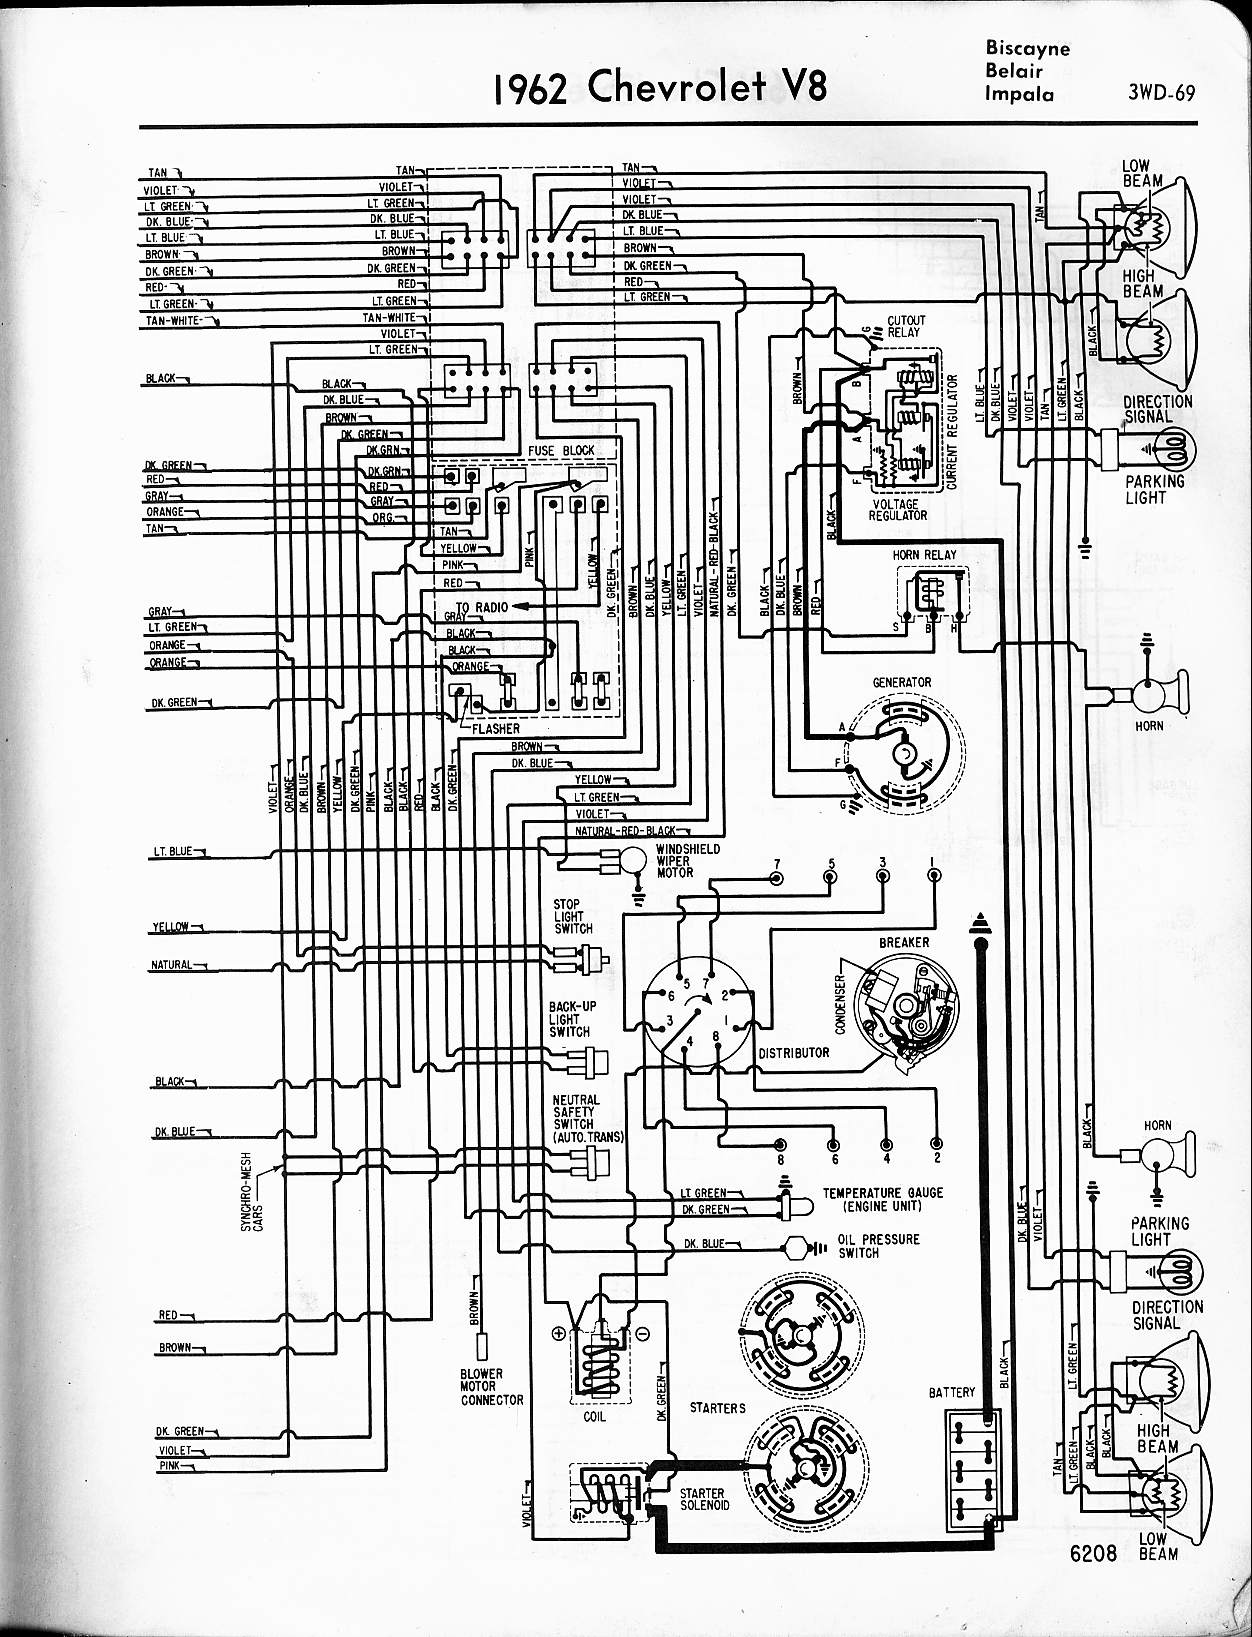 1967 chevy impala wiring harness diagram wiring diagram